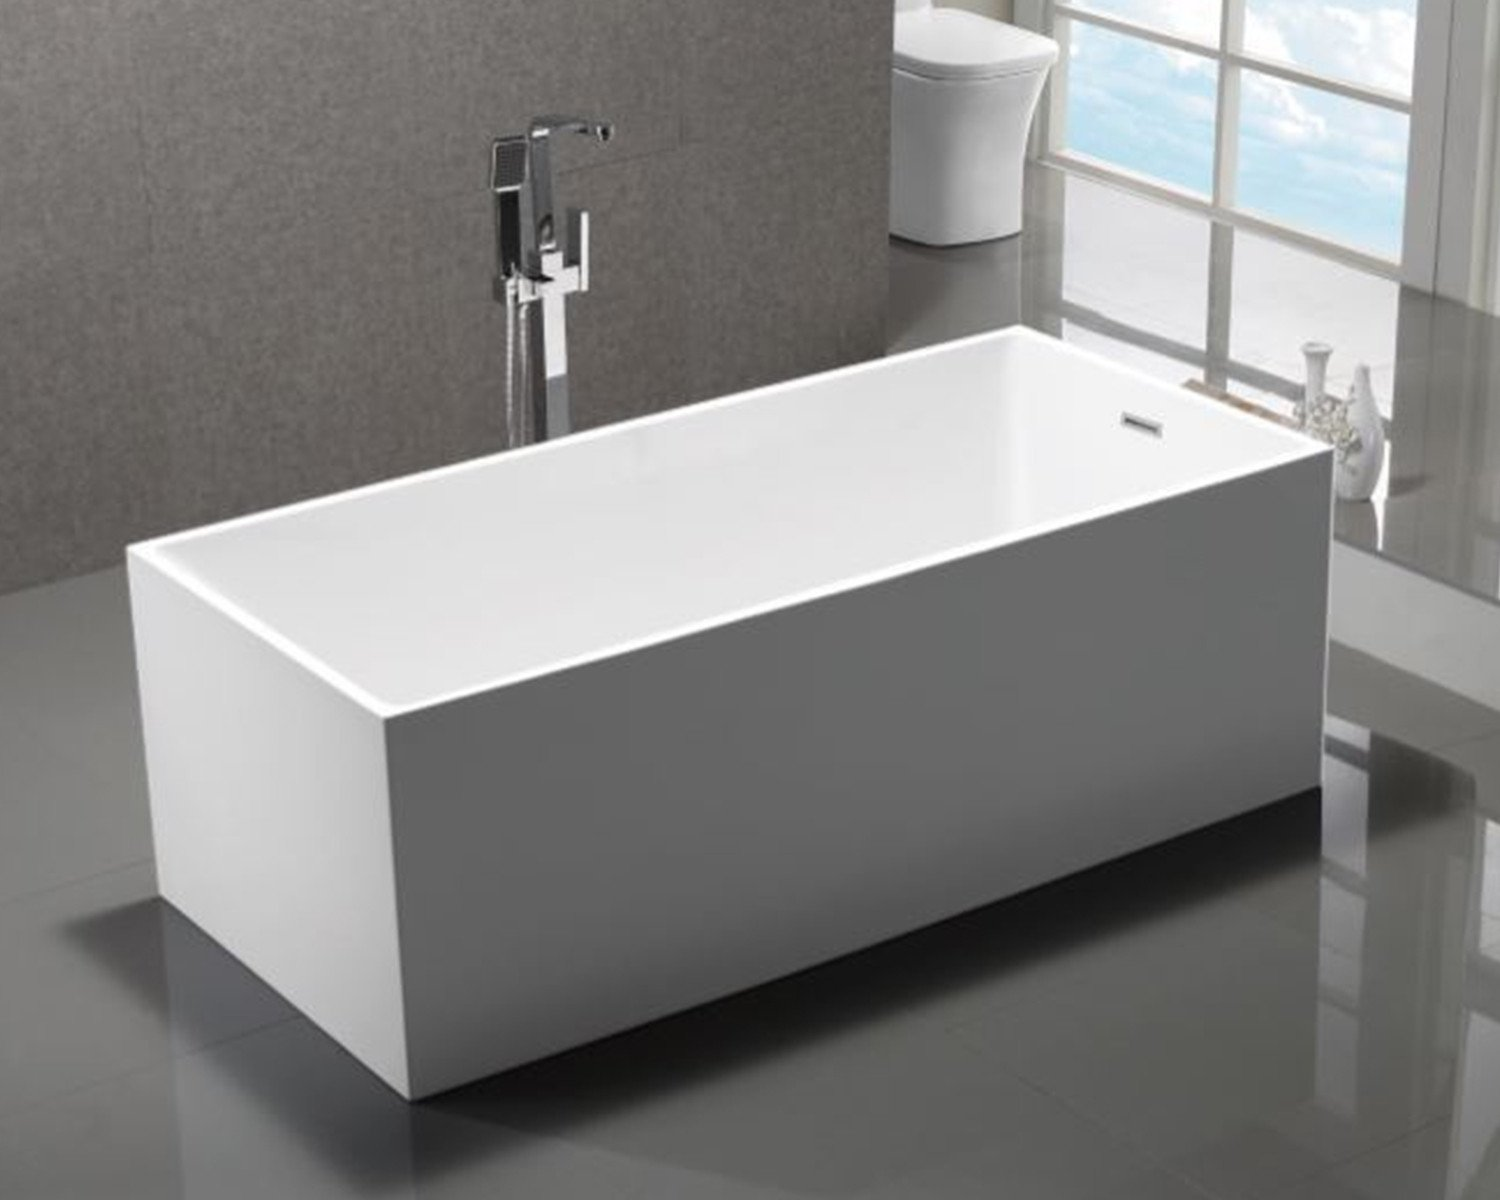 "Long Beach 60"" Freestanding Acrylic Bathtub - White Furniture MTD Vanities"